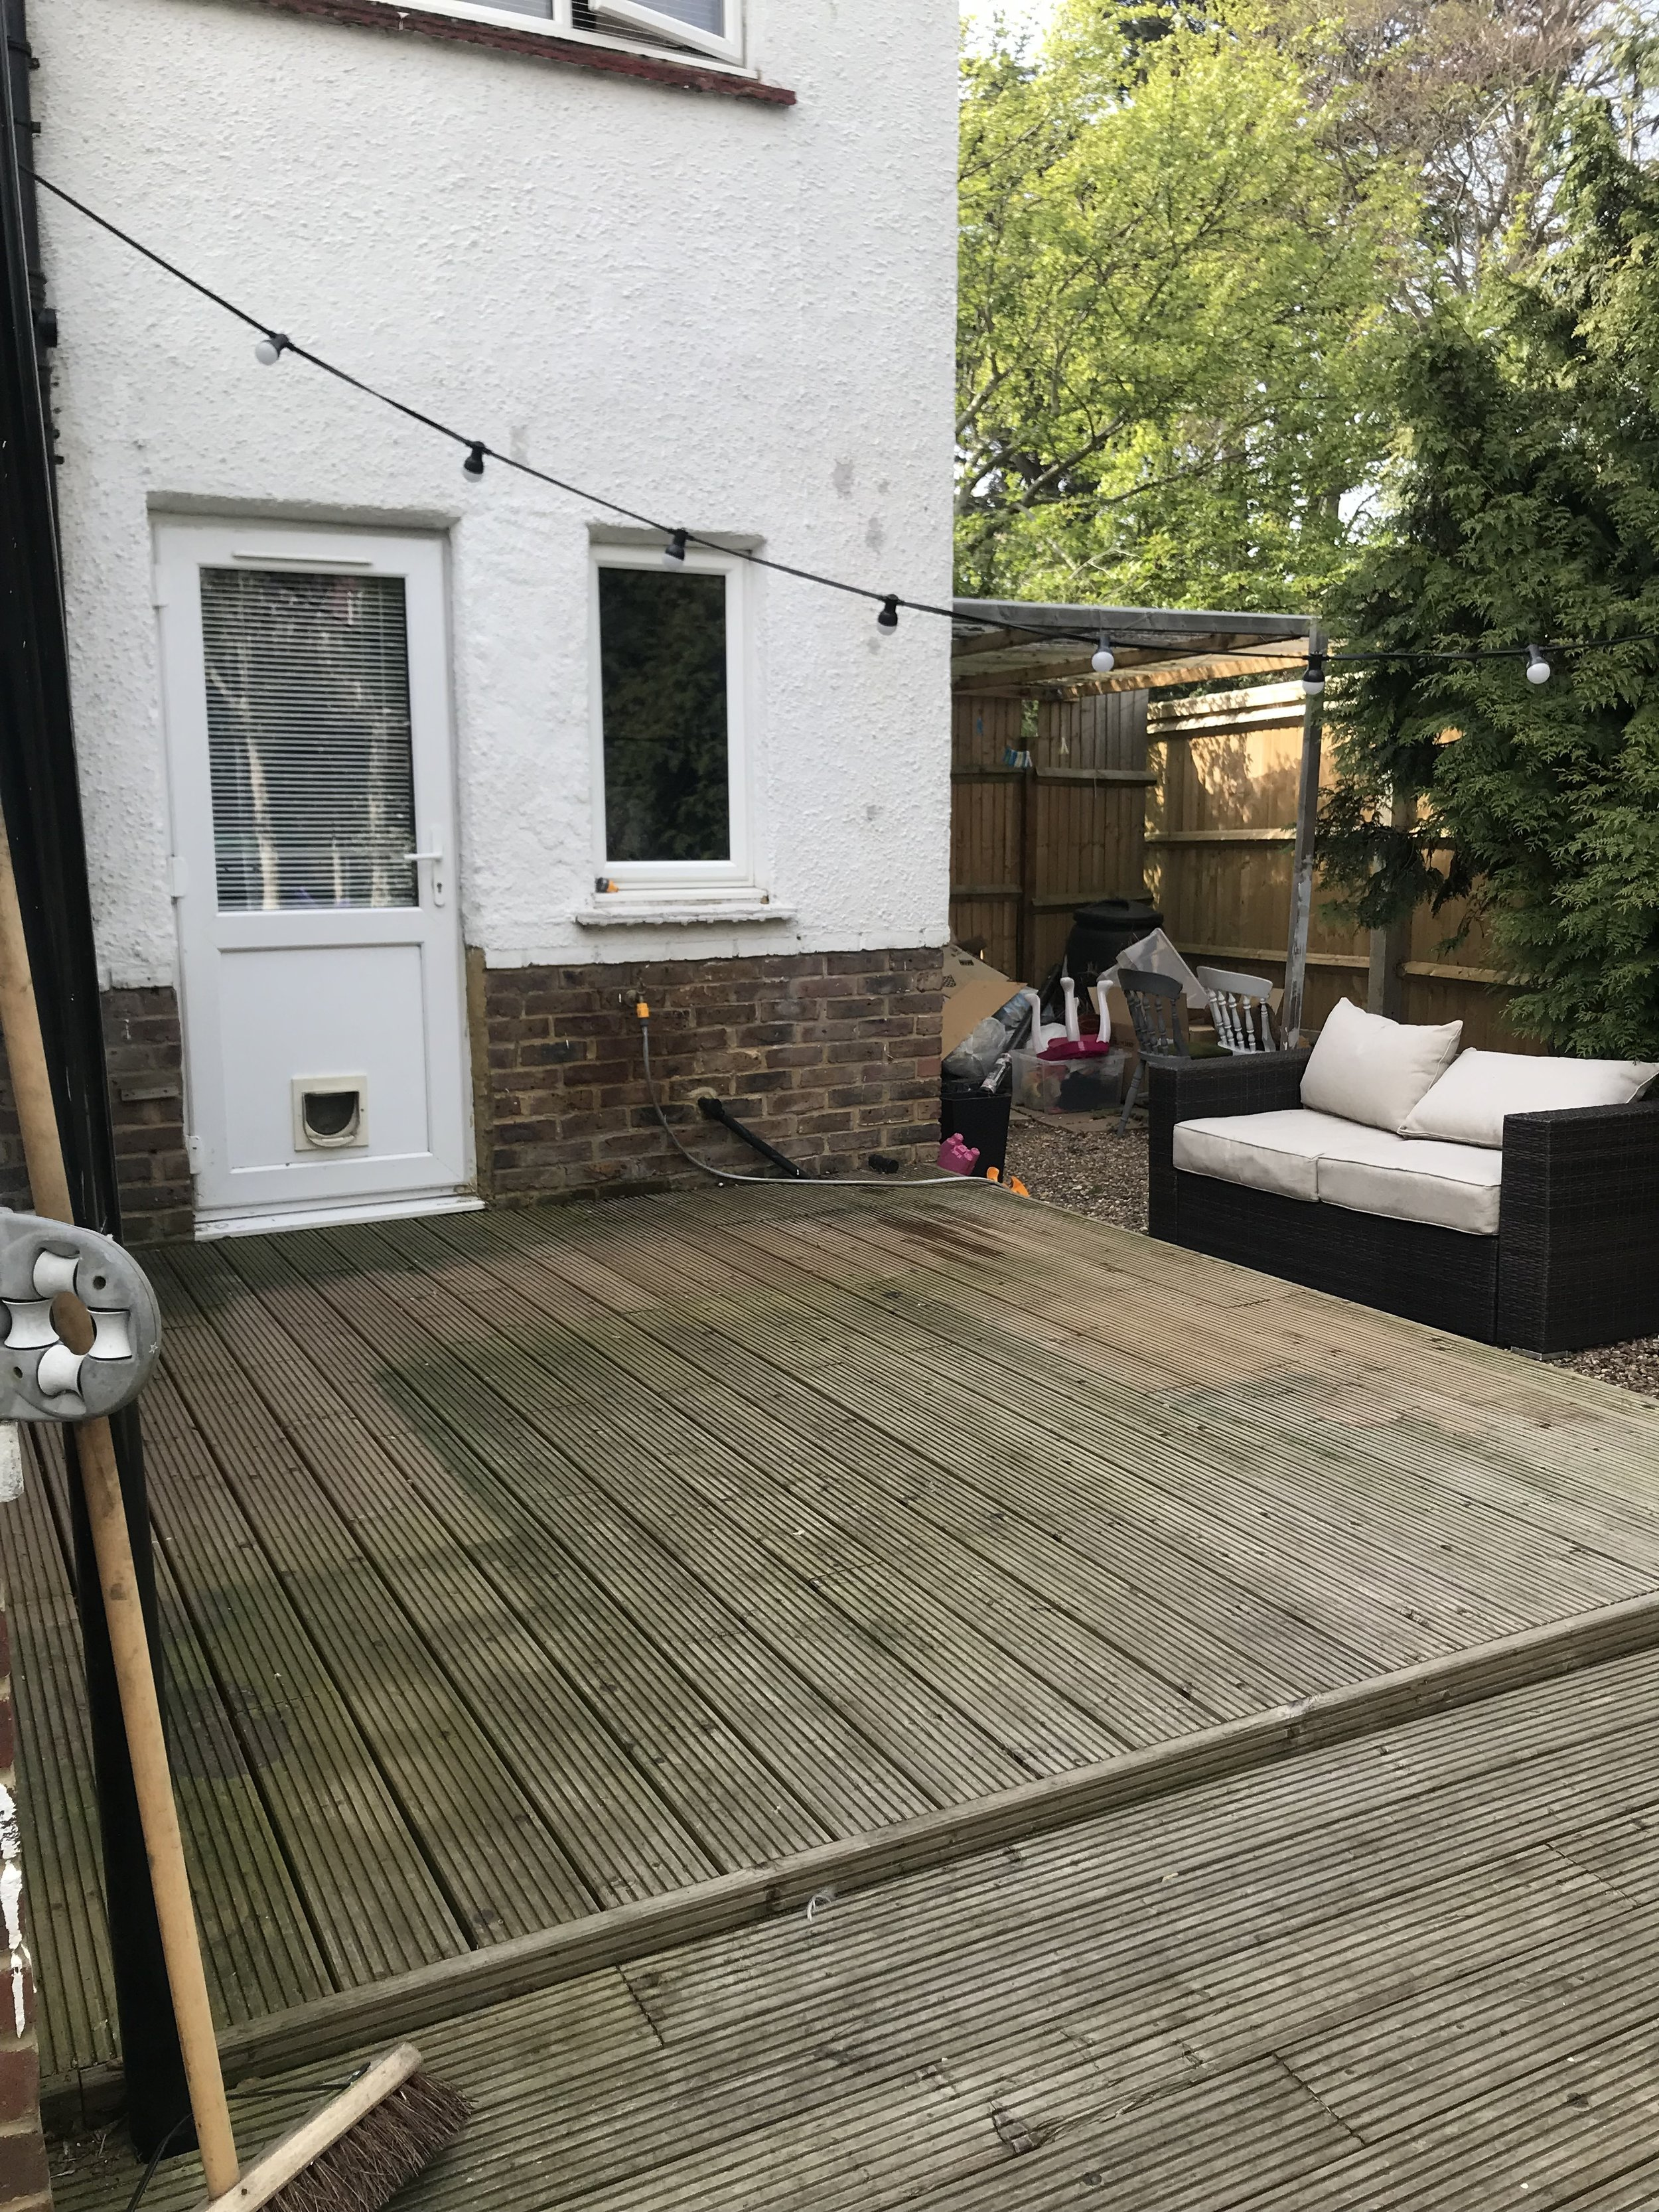 You can make out where the garden furniture was, protecting the decking from the elements!